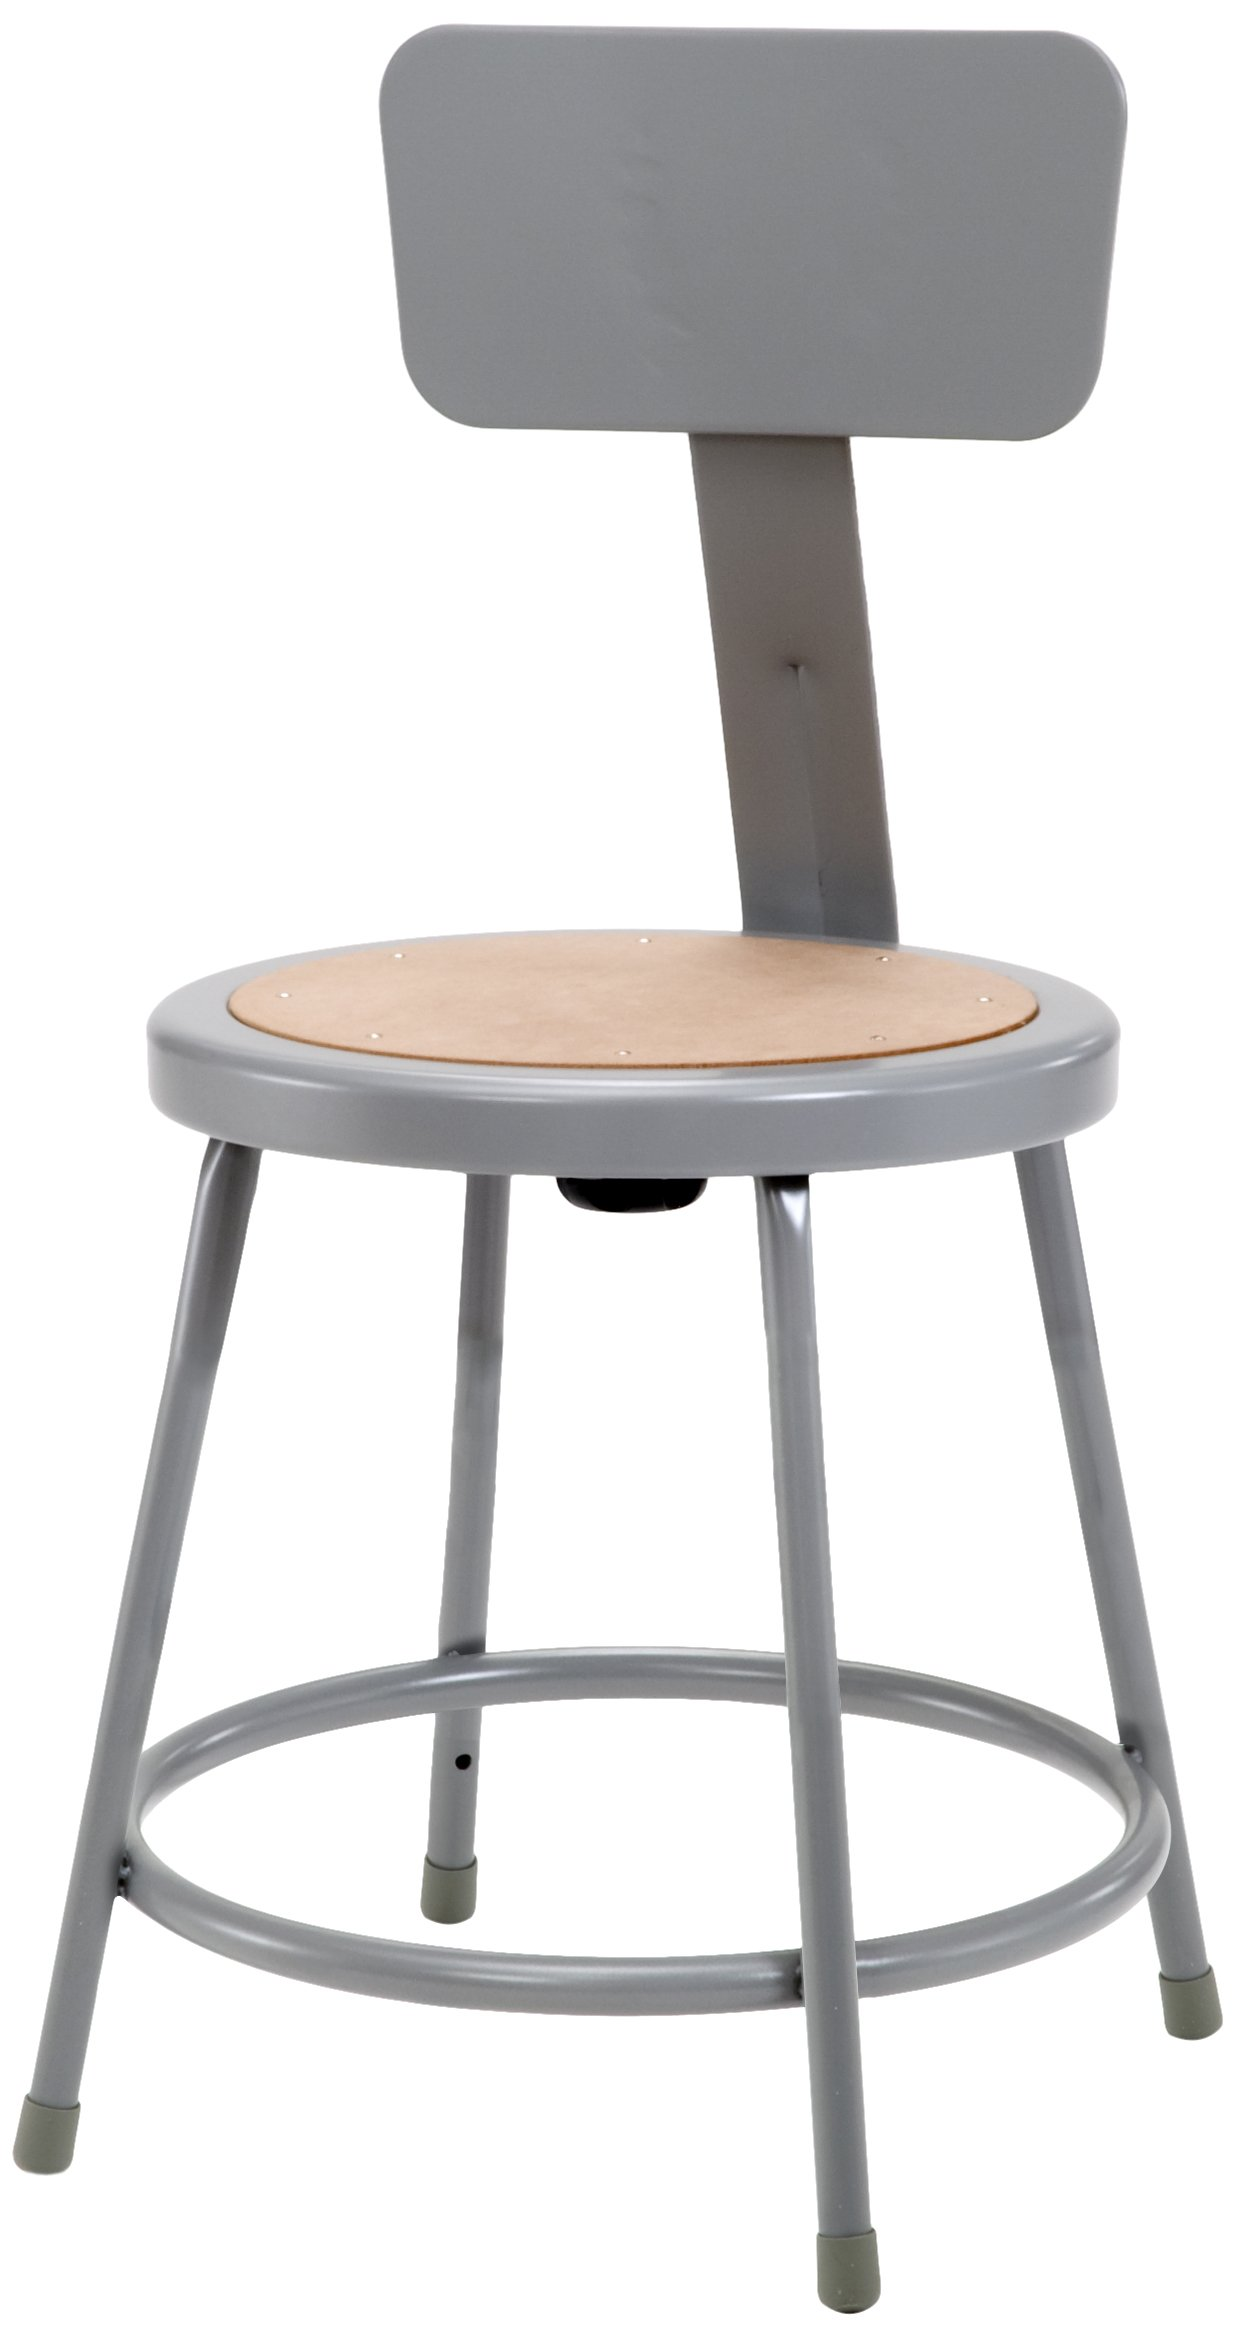 National Public Seating 6218B Steel Stool with 18'' Hardboard Seat and Backrest, Grey